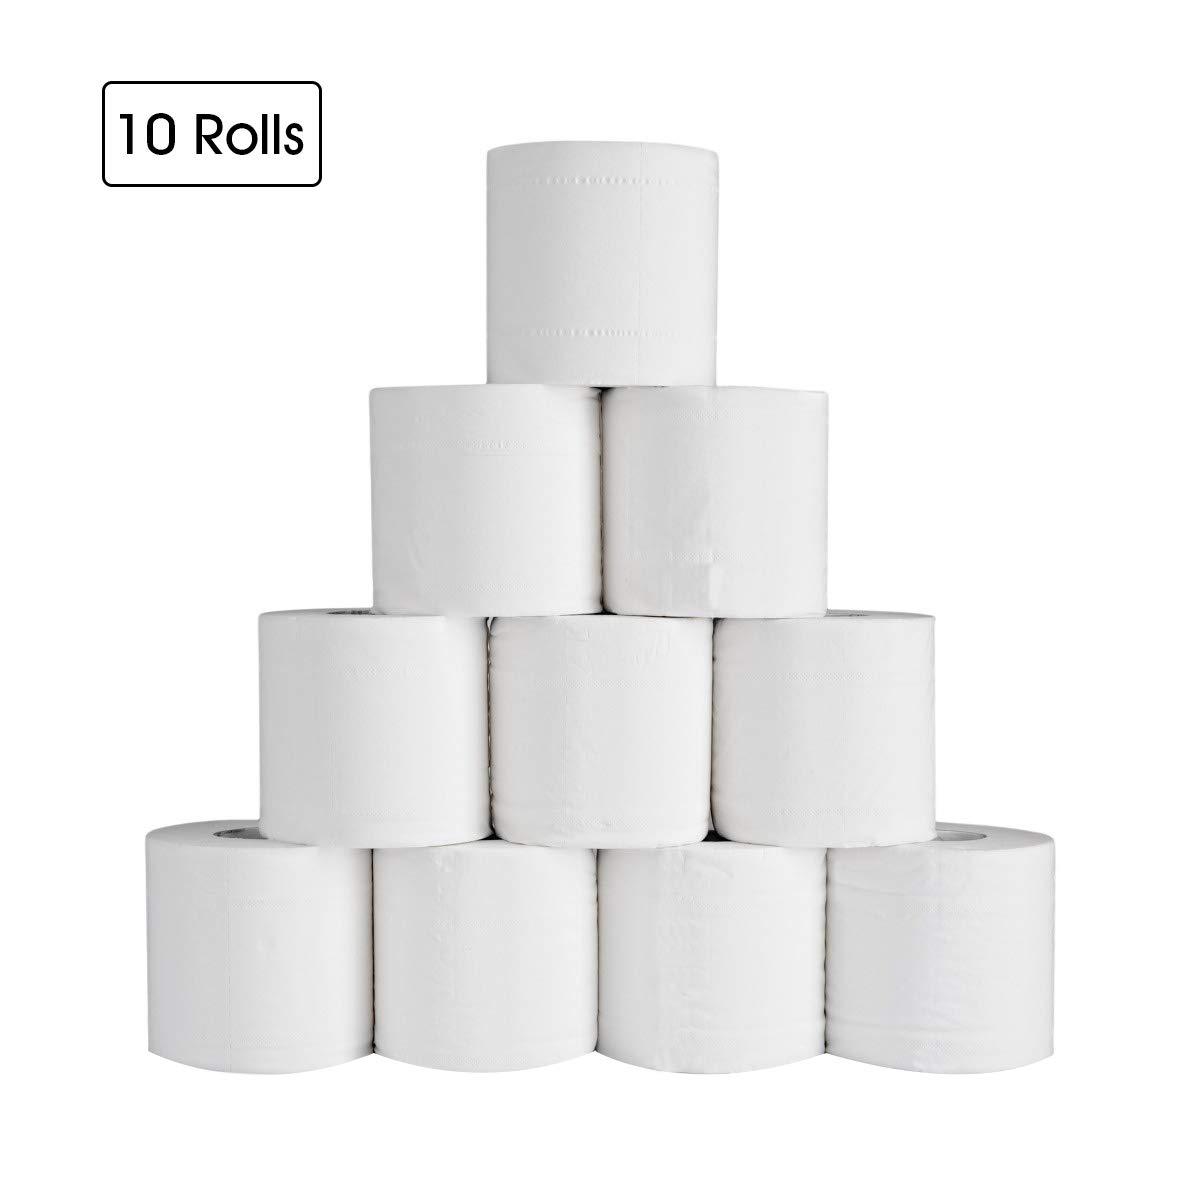 MDDYF Soft Toilet Paper 10 Rolls, 4-Ply Comfortable Thick Bathroom Tissues Skin-Friendly Roll Paper, Highly Absorbent Paper Tissue for Home, Kitchen, Toilet